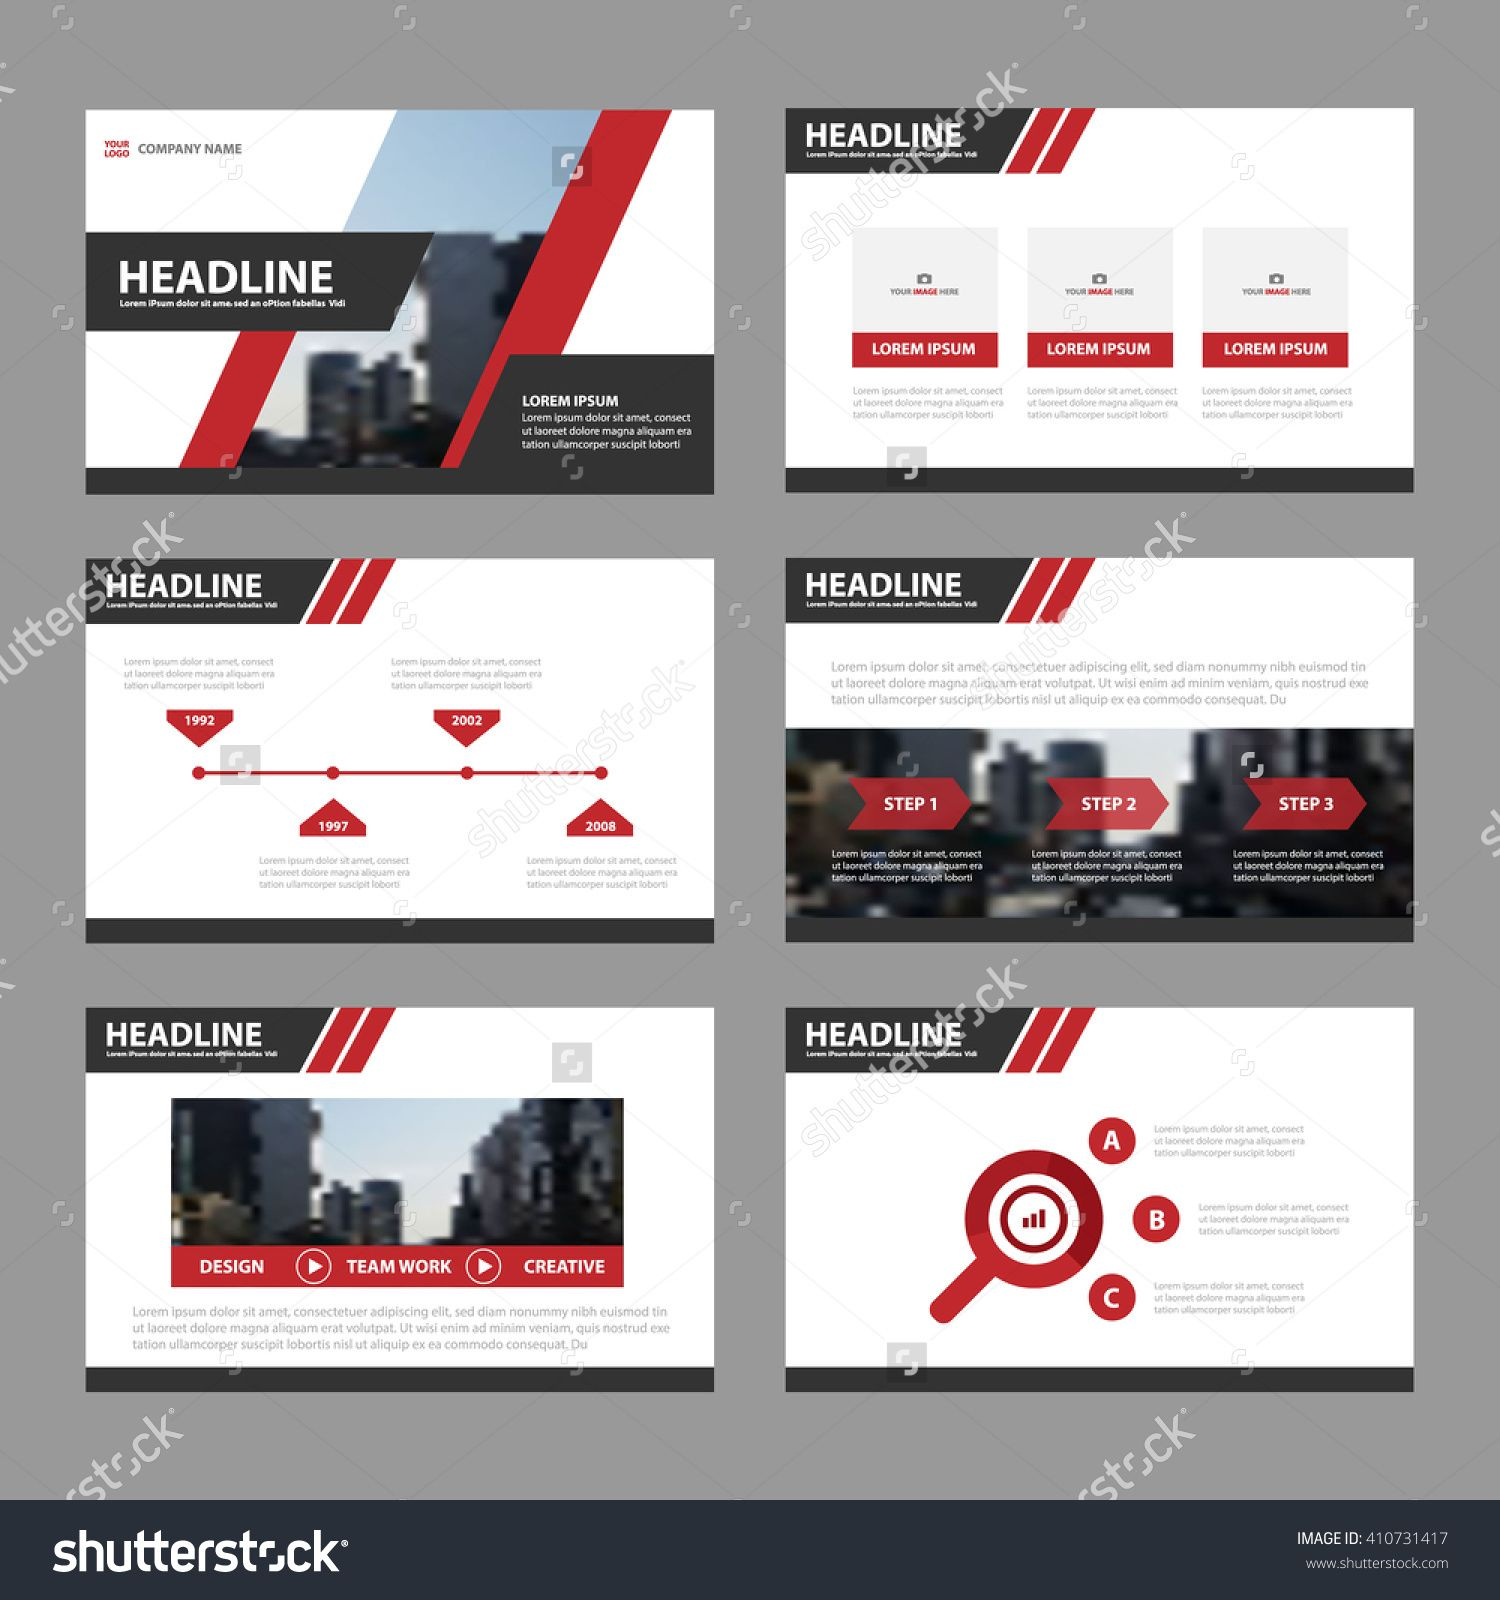 Red Black Presentation Templates Infographic Elements Flat Design